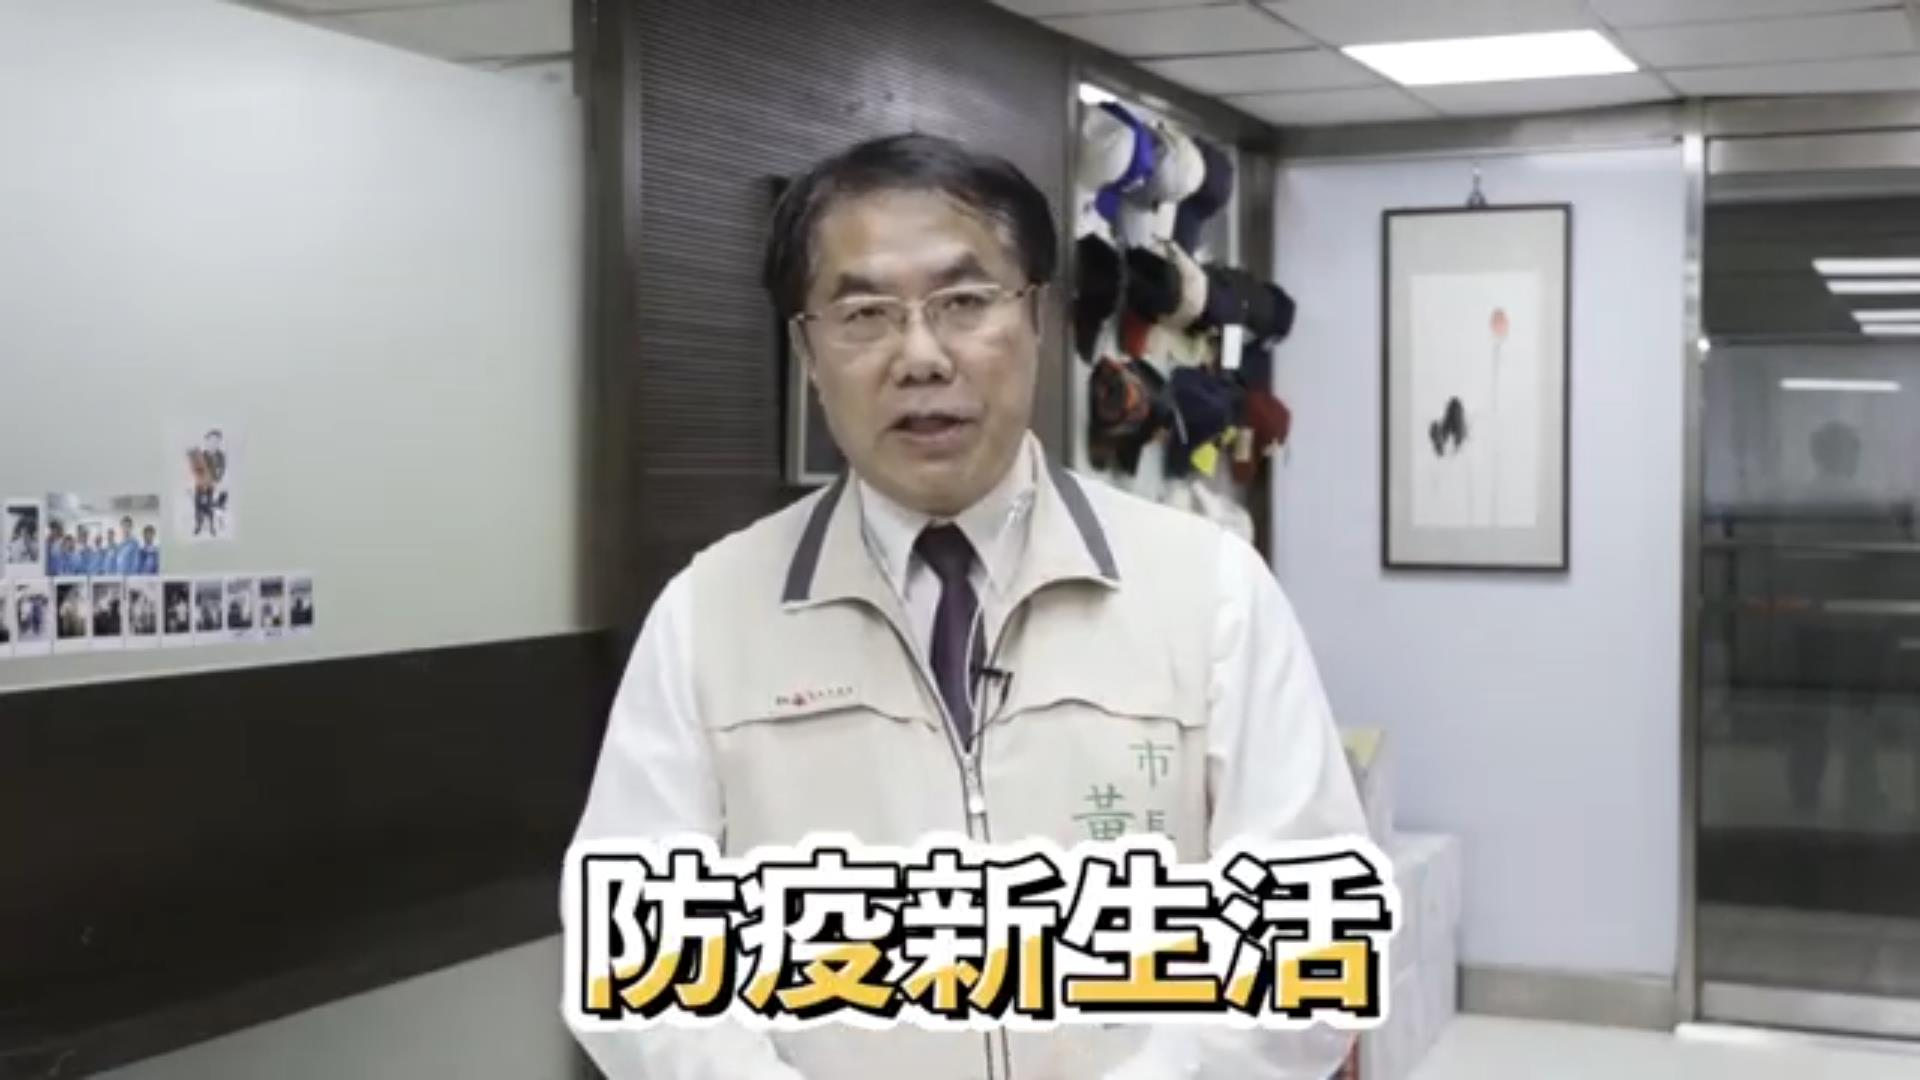 黃偉哲市長防疫宣導 防疫新生活https://www.youtube.com/watch?v=0XktC4z9Xsk&feature=youtu.be